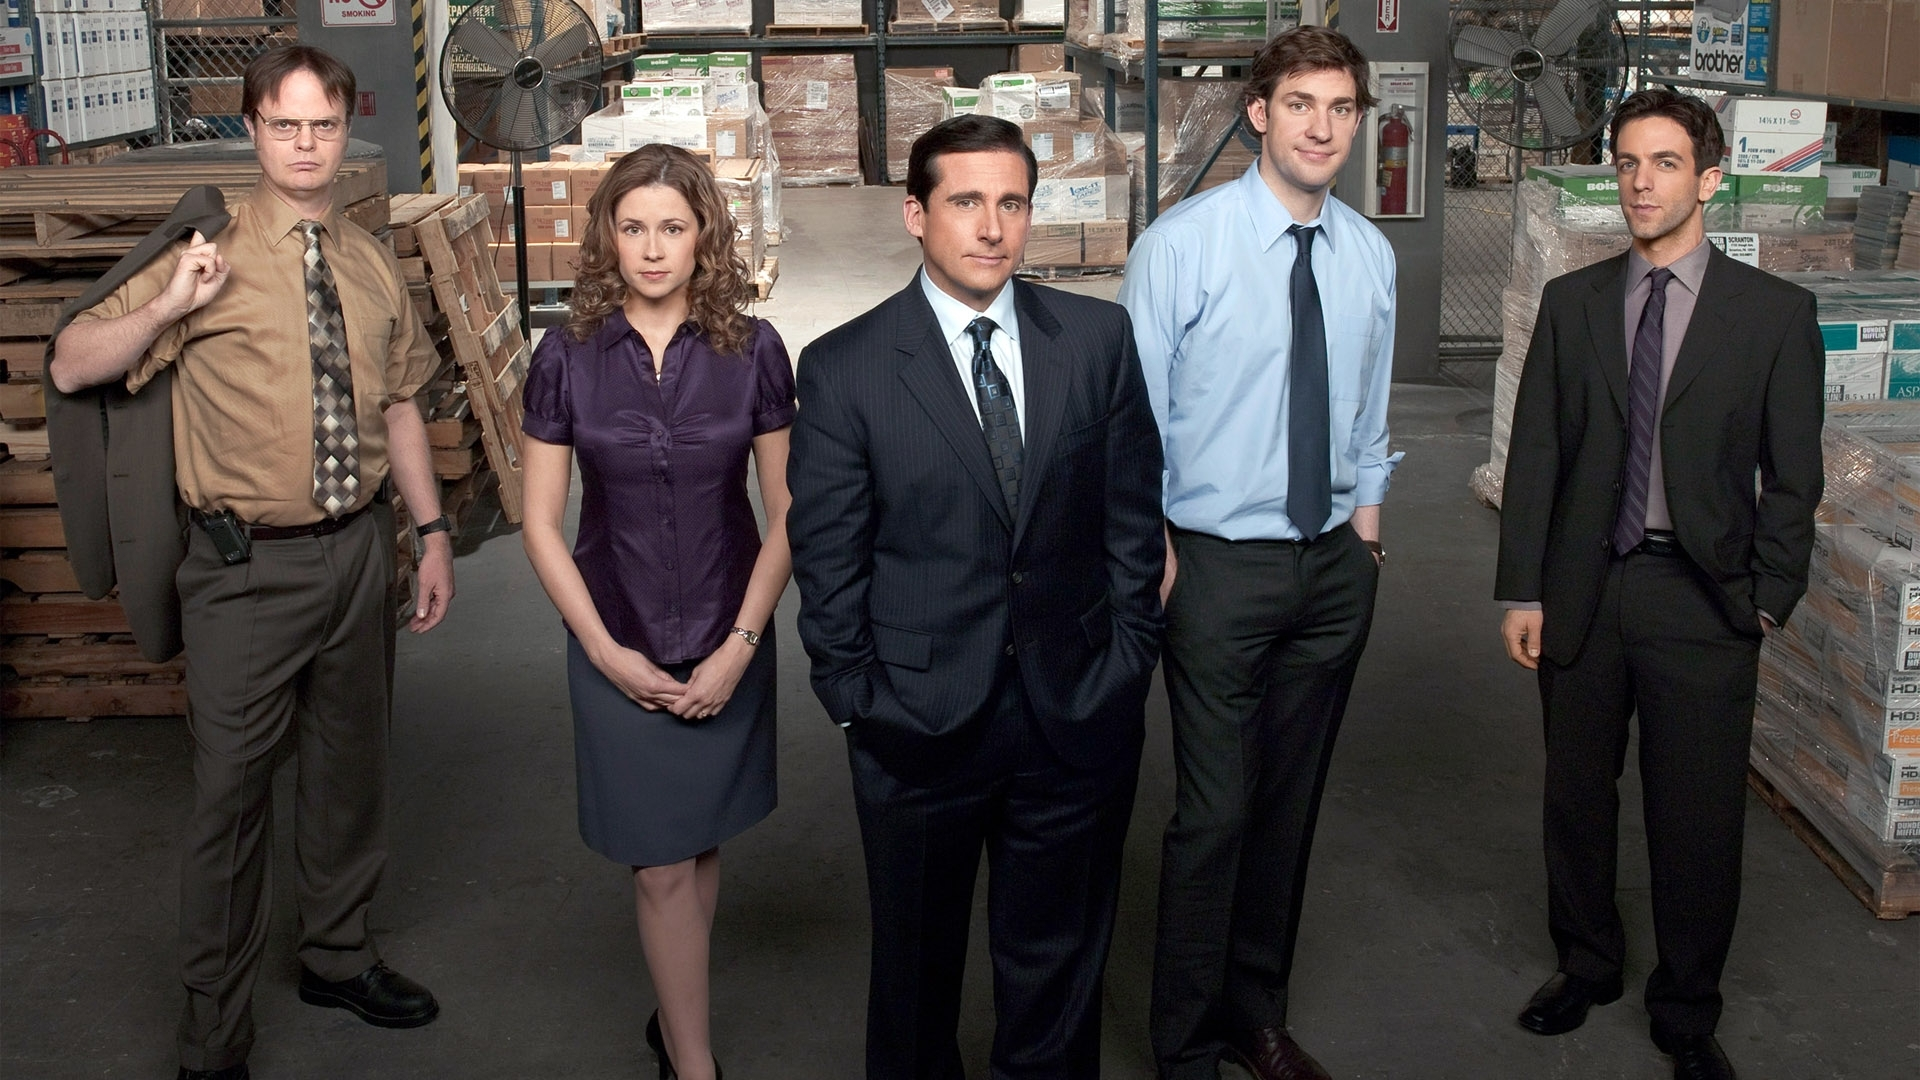 the office (us) full hd wallpaper and background image | 1920x1080